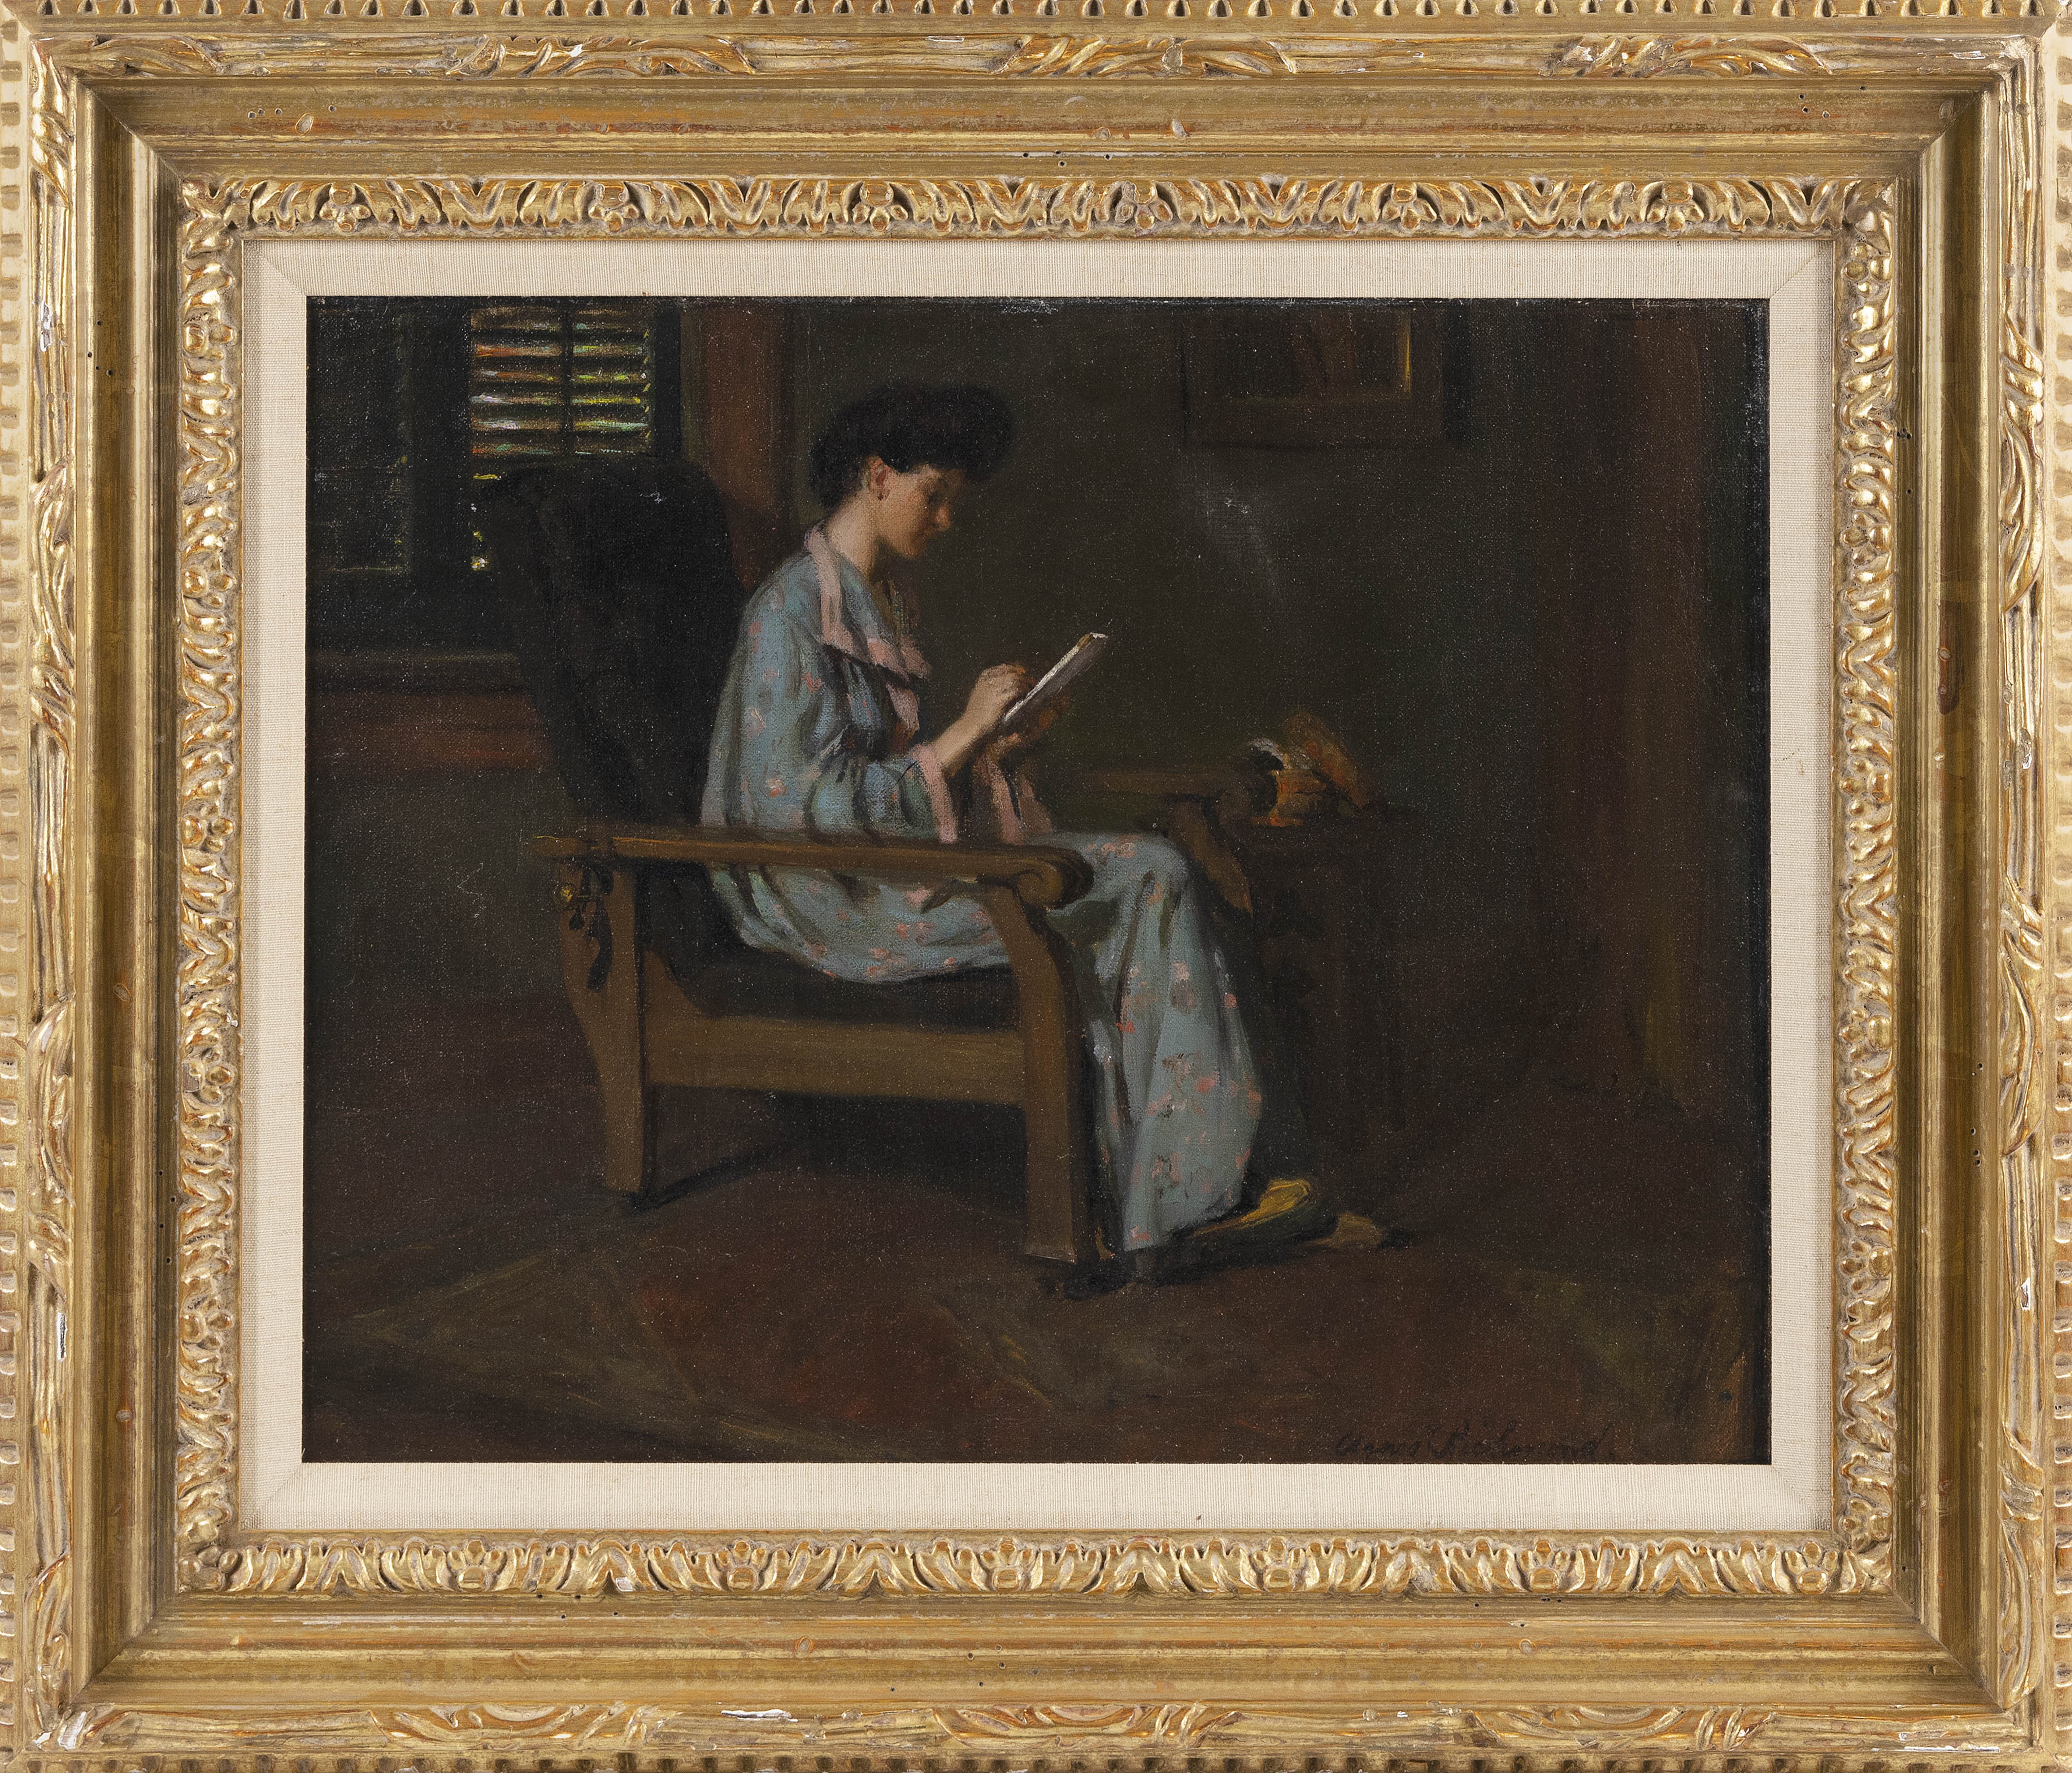 """AGNES RICHMOND (New York/Illinois, 1870-1964), """"A Young Lady Sketching, 1907""""., Oil on canvas, 16"""" x 20"""". Framed 23"""" x 27""""."""